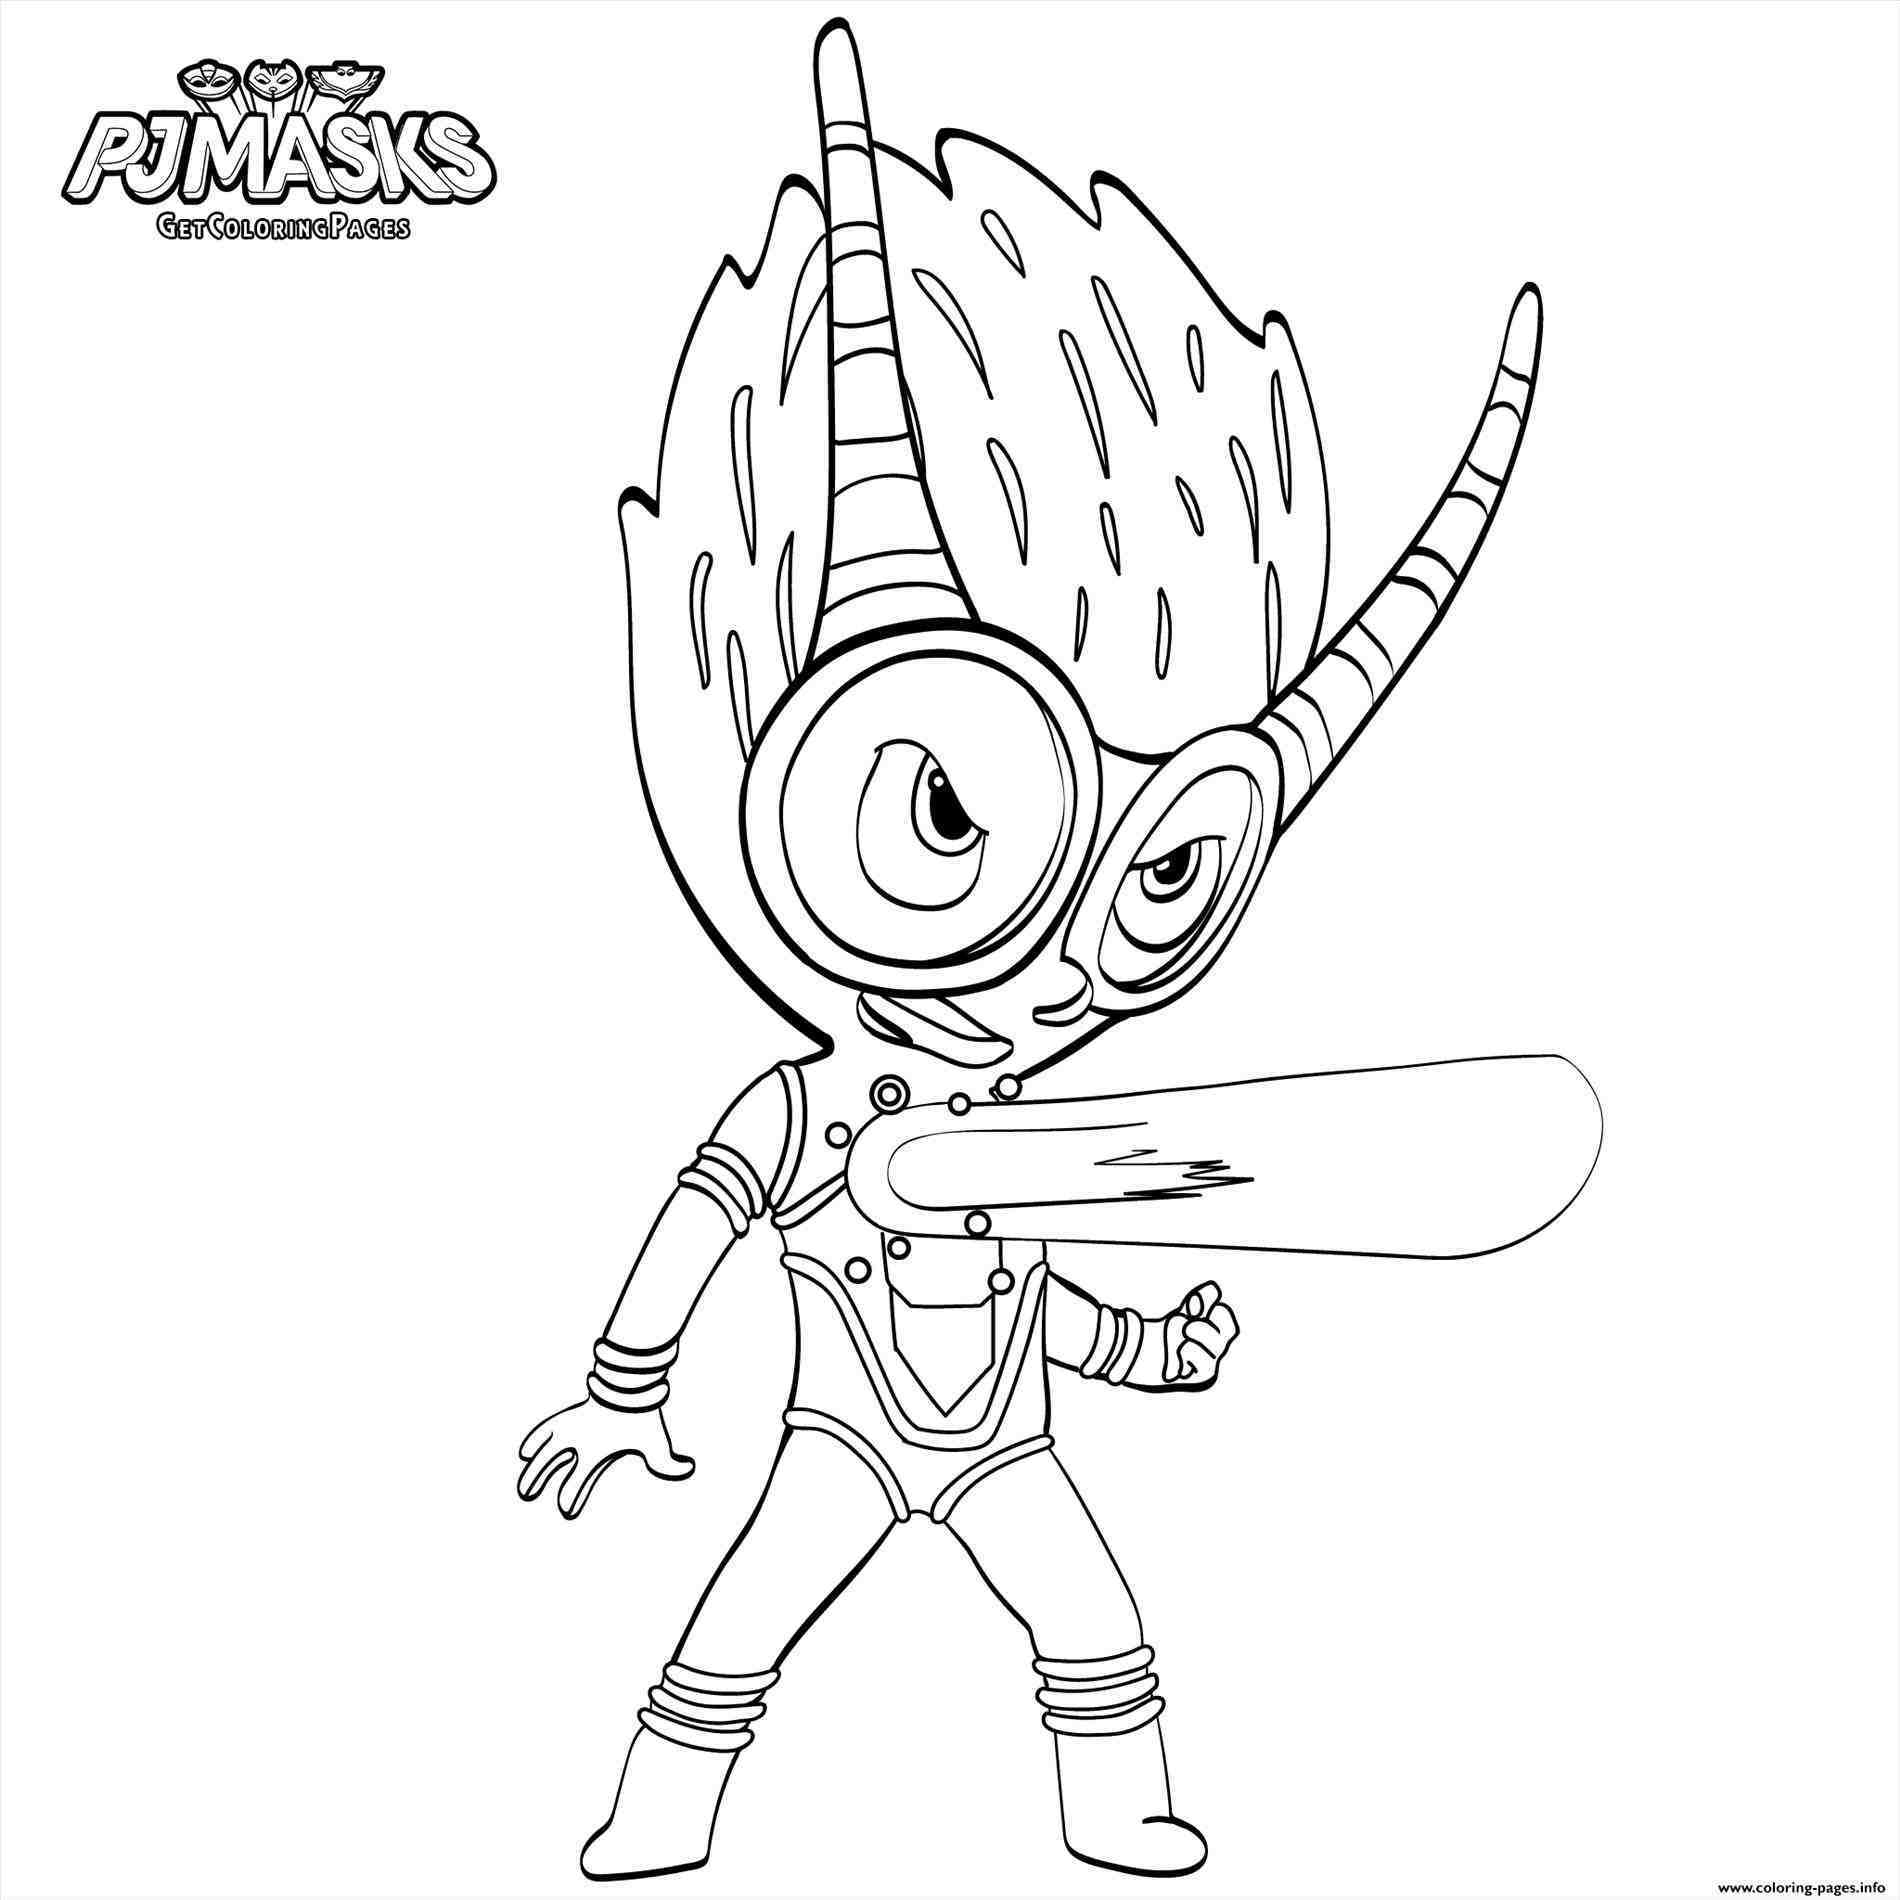 1900x1900 Coloring Pages For Kids Pj Masks